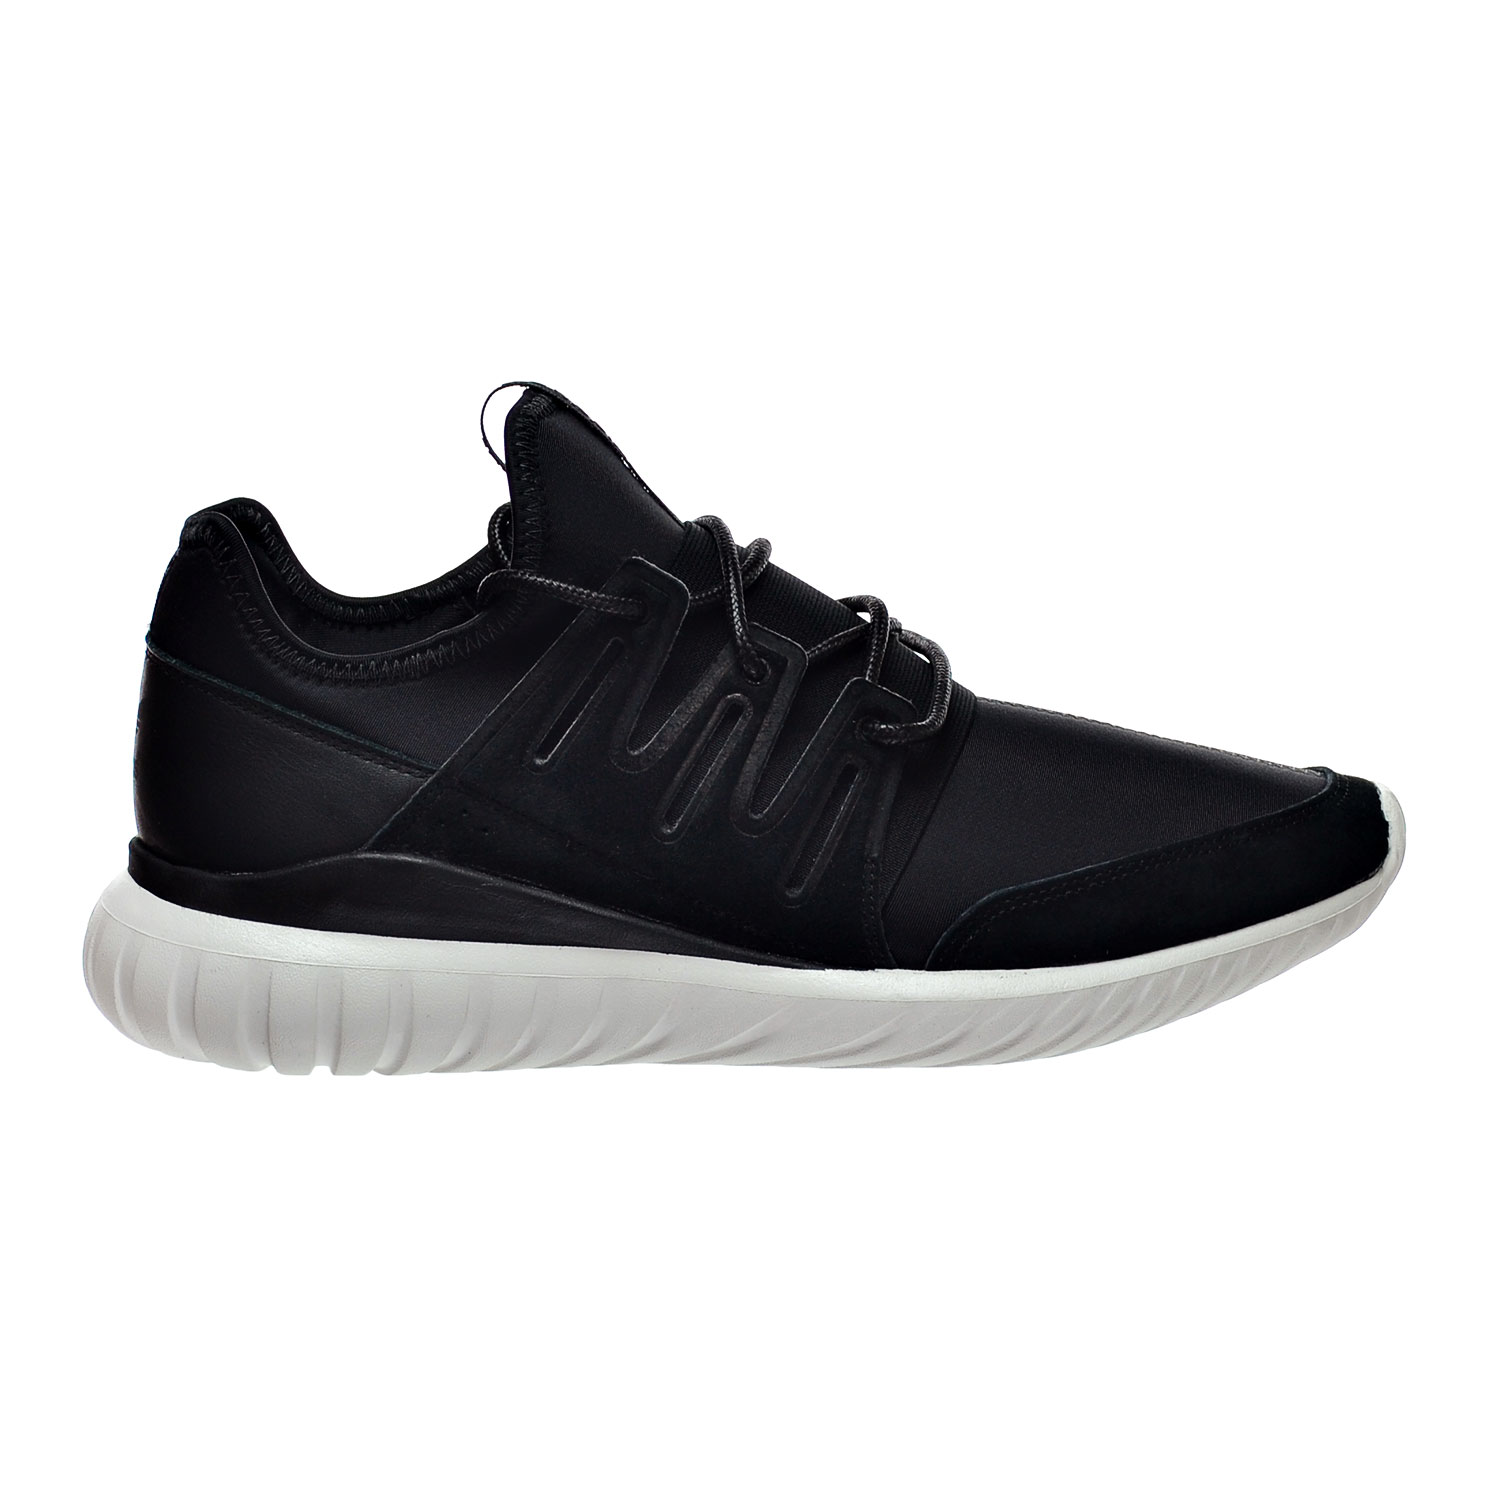 Adidas Tubular Radial Shoes Black